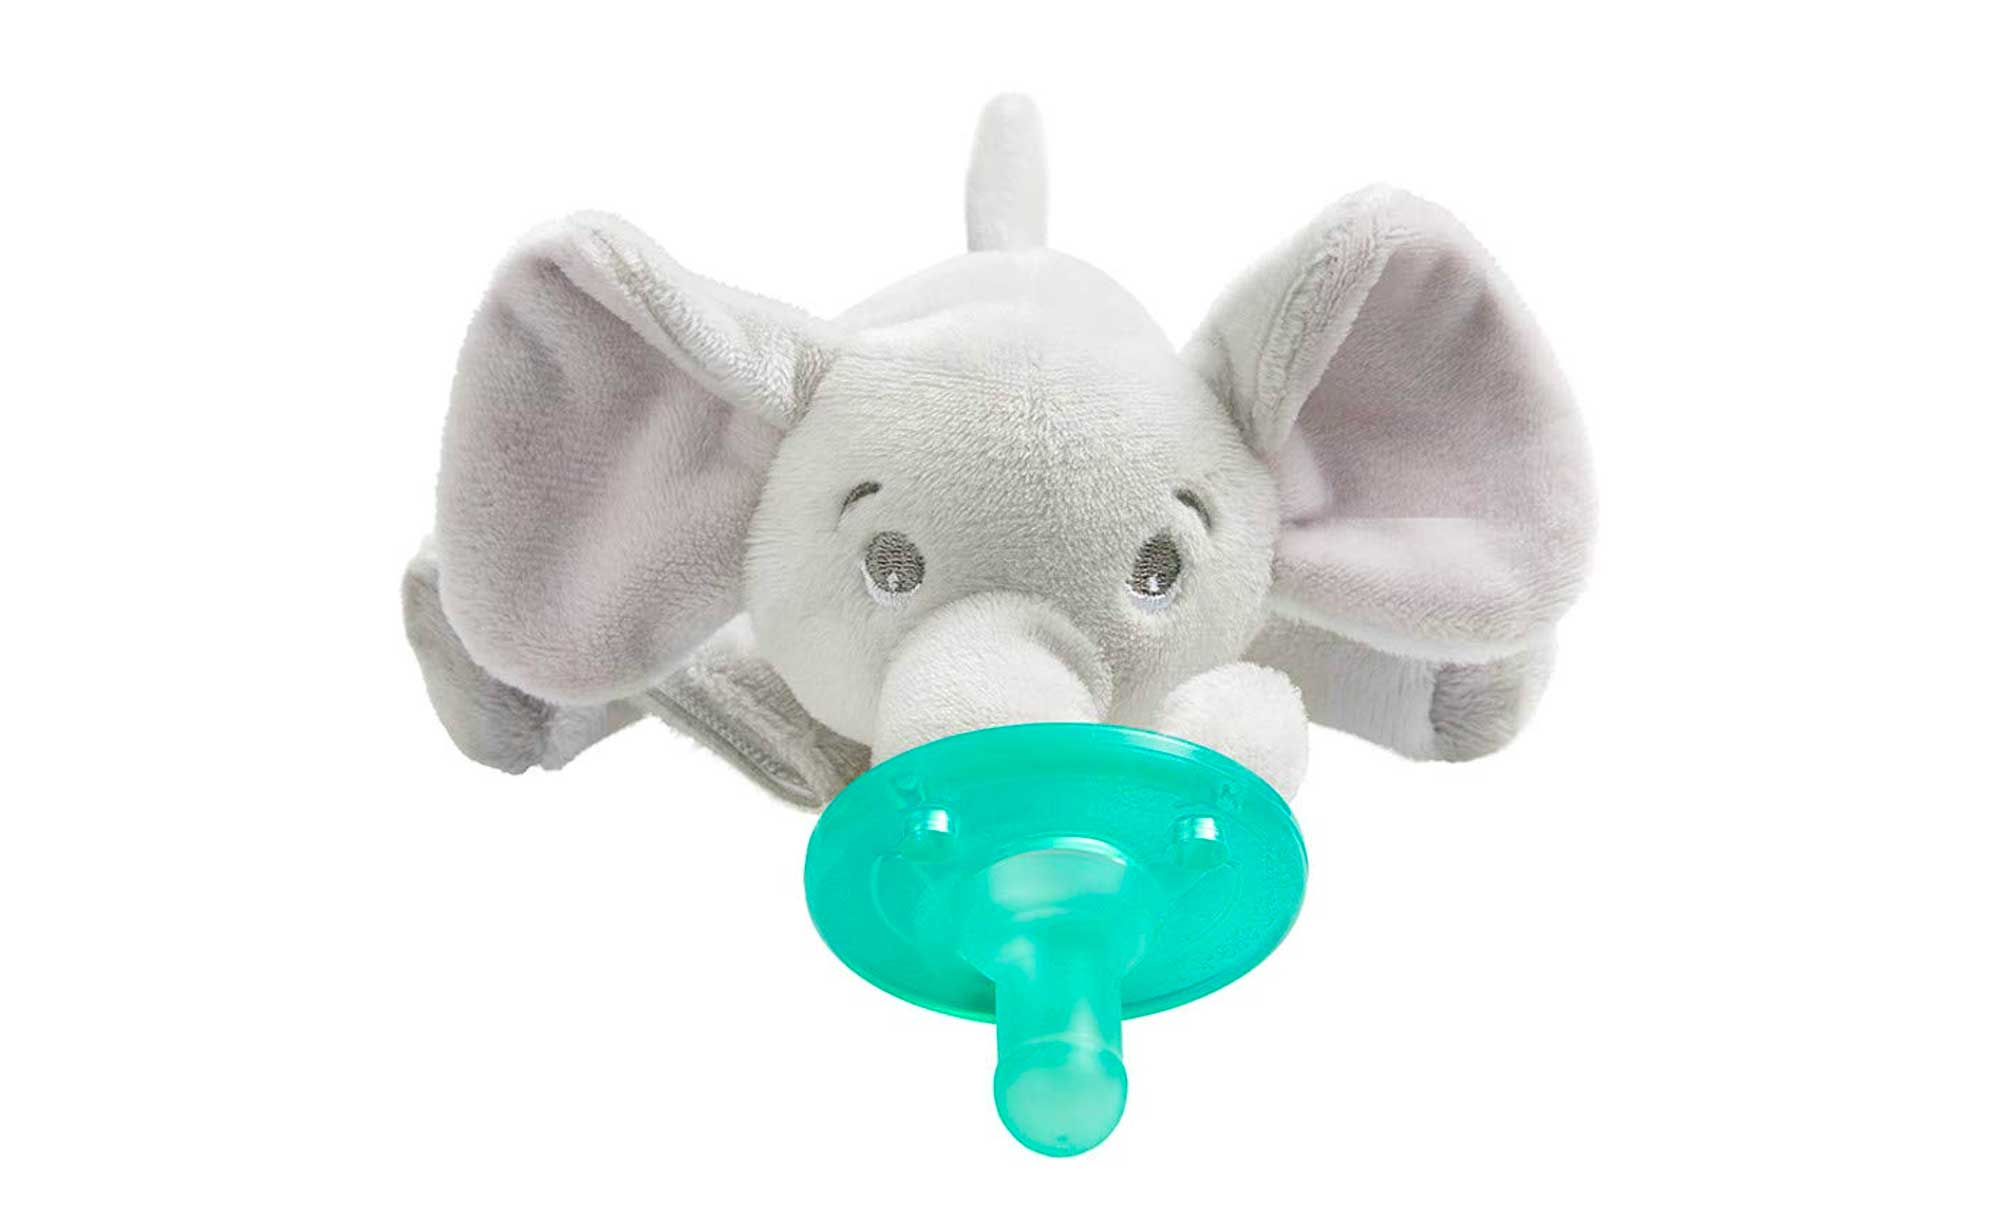 Philips Avent Soothie Snuggle Pacifier, 0-3 Months, Elephant